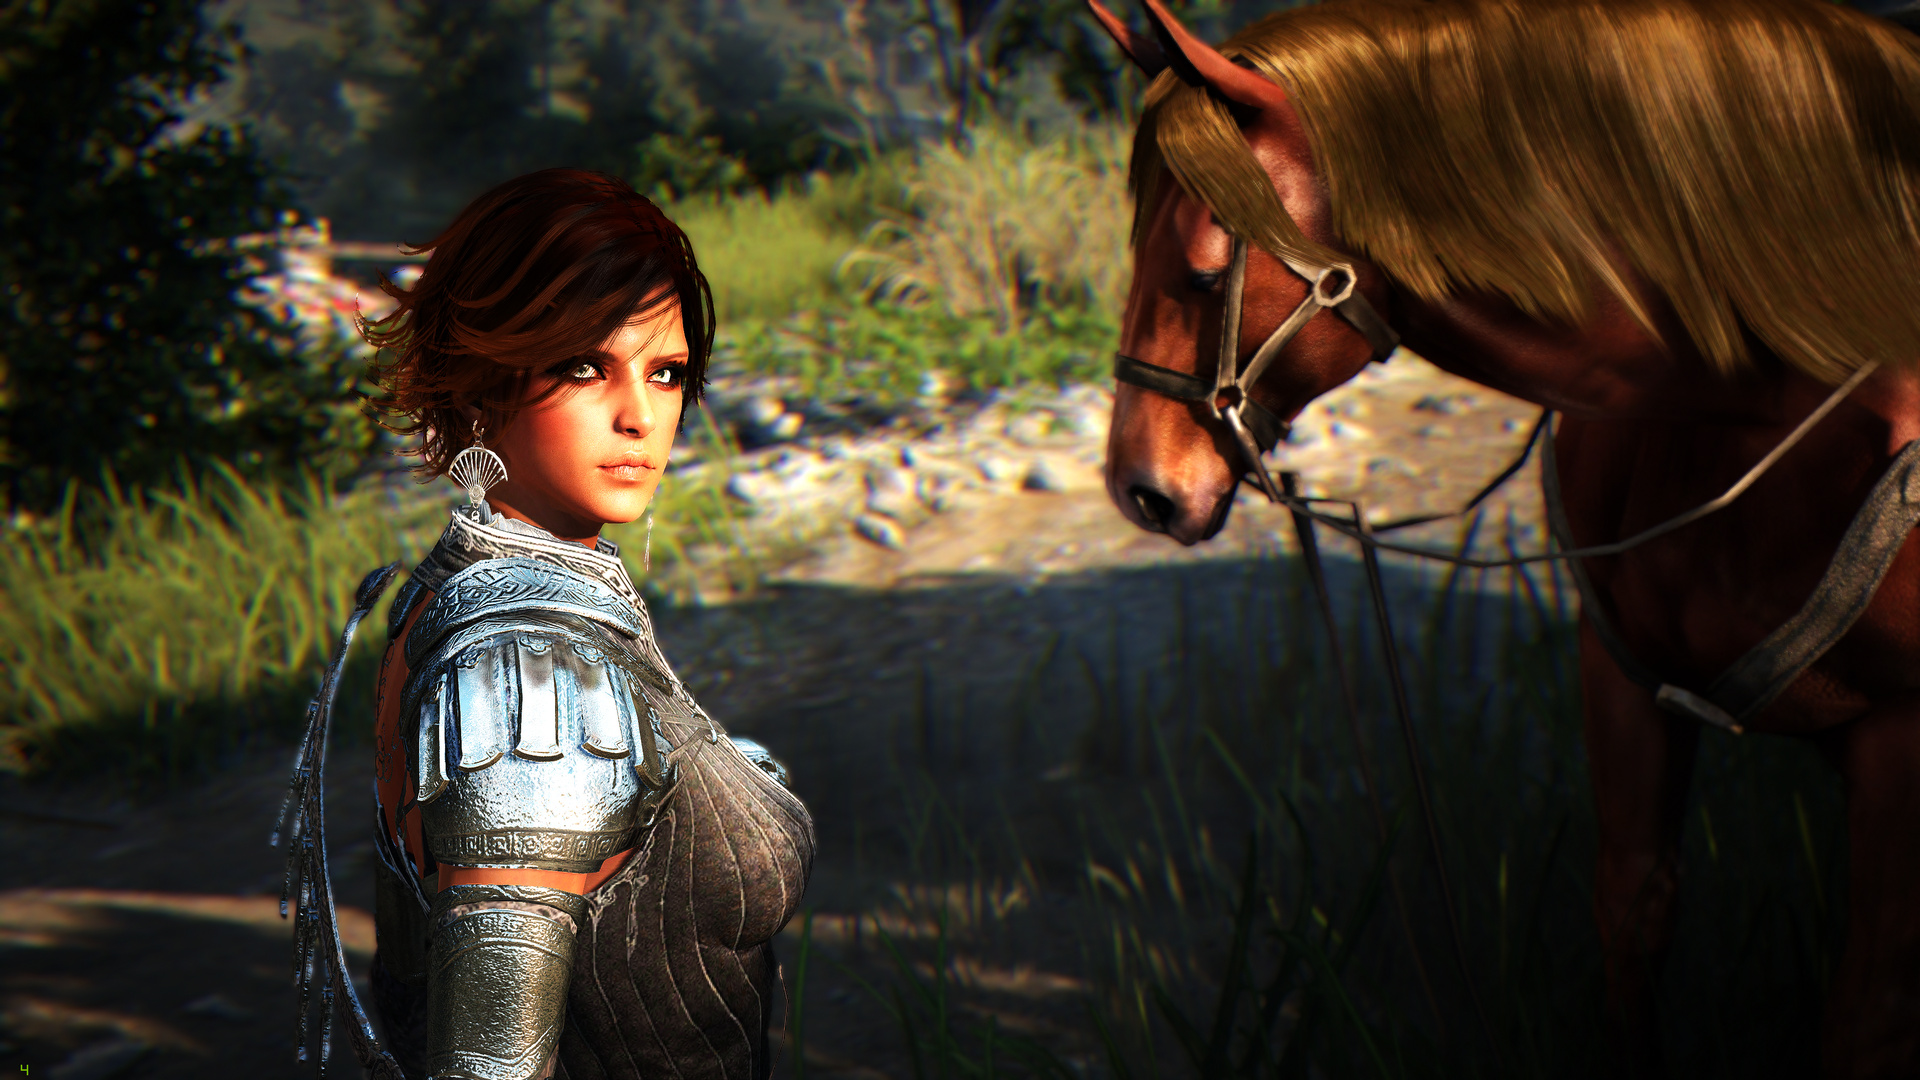 Black Desert Online - Beauty Woman and Horse